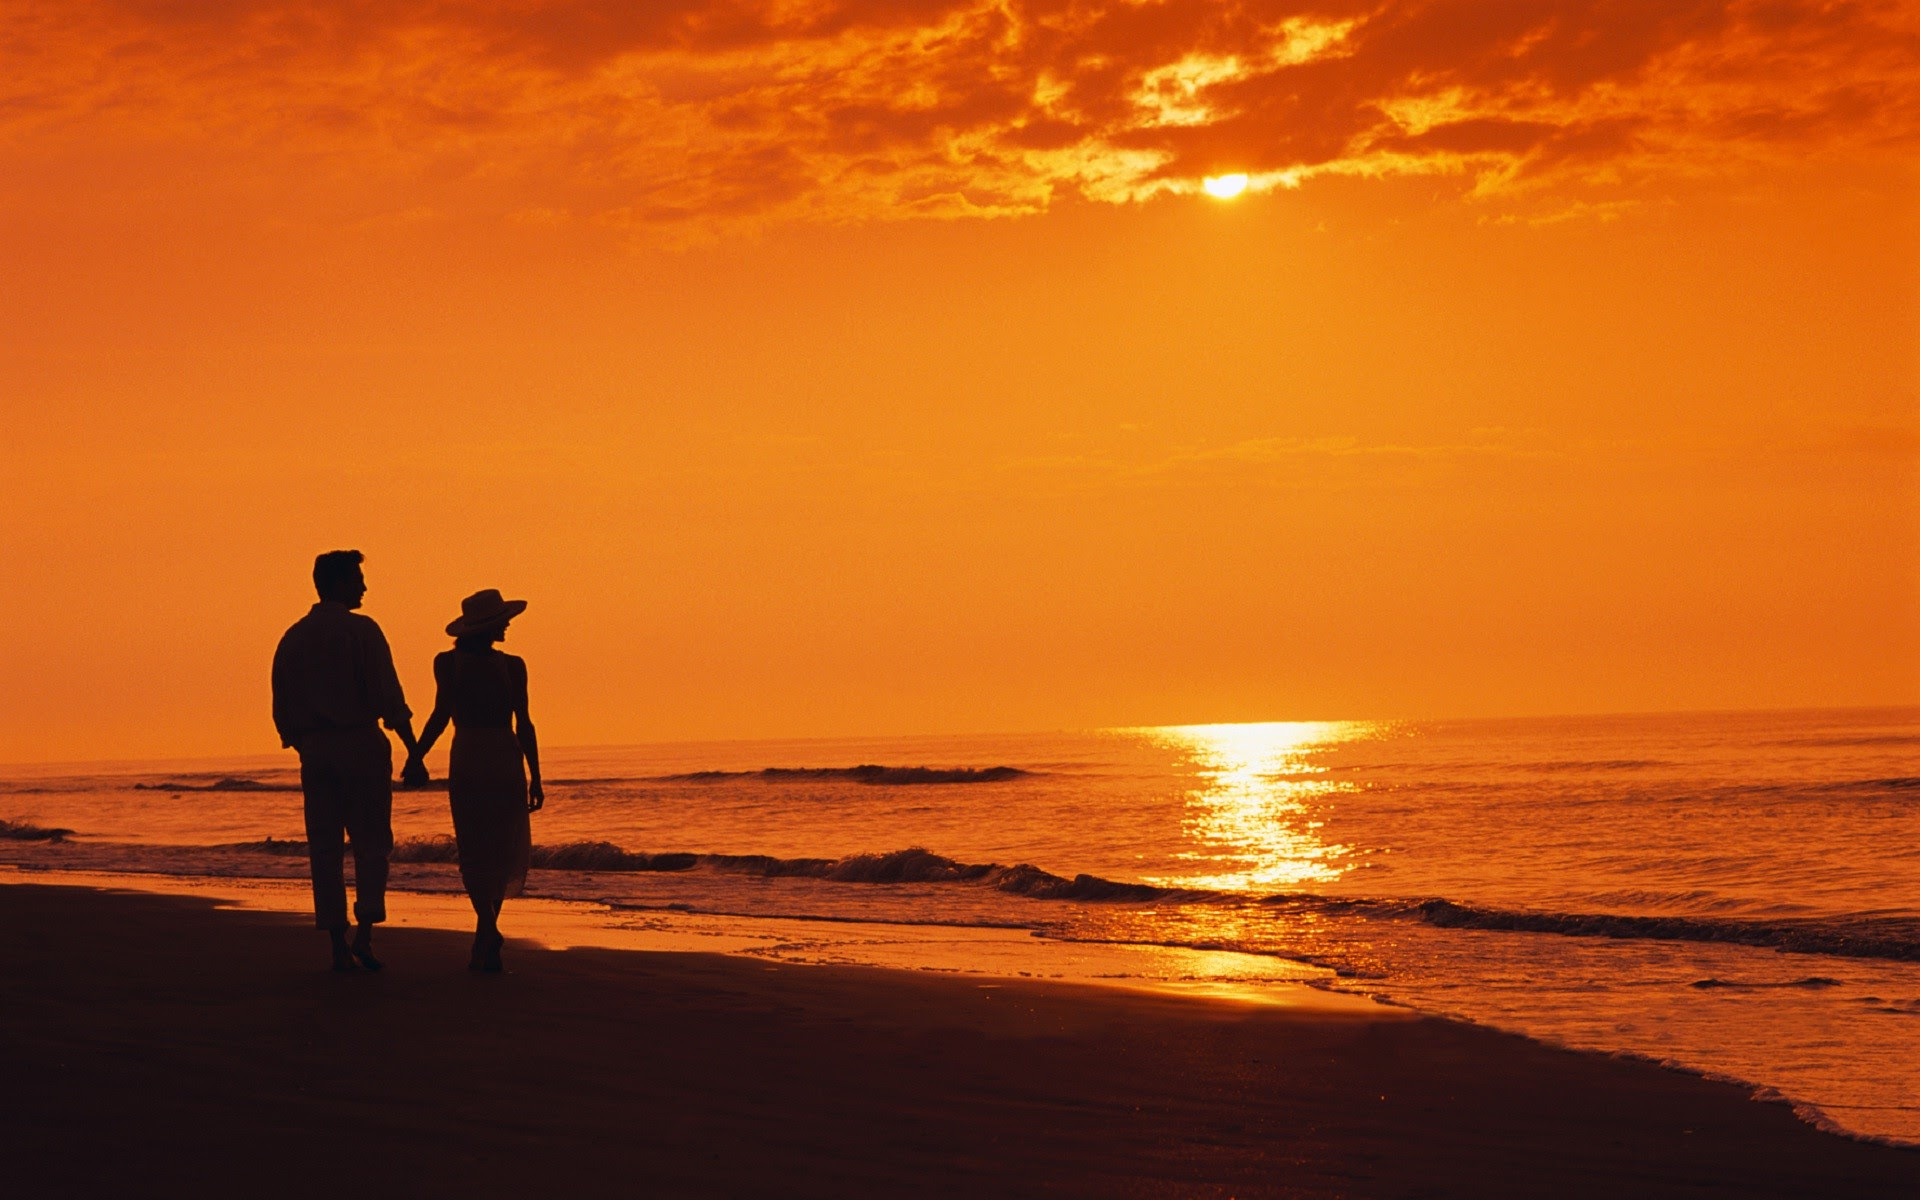 105+ Romantic Couple On Beach Wallpaper Terbaru